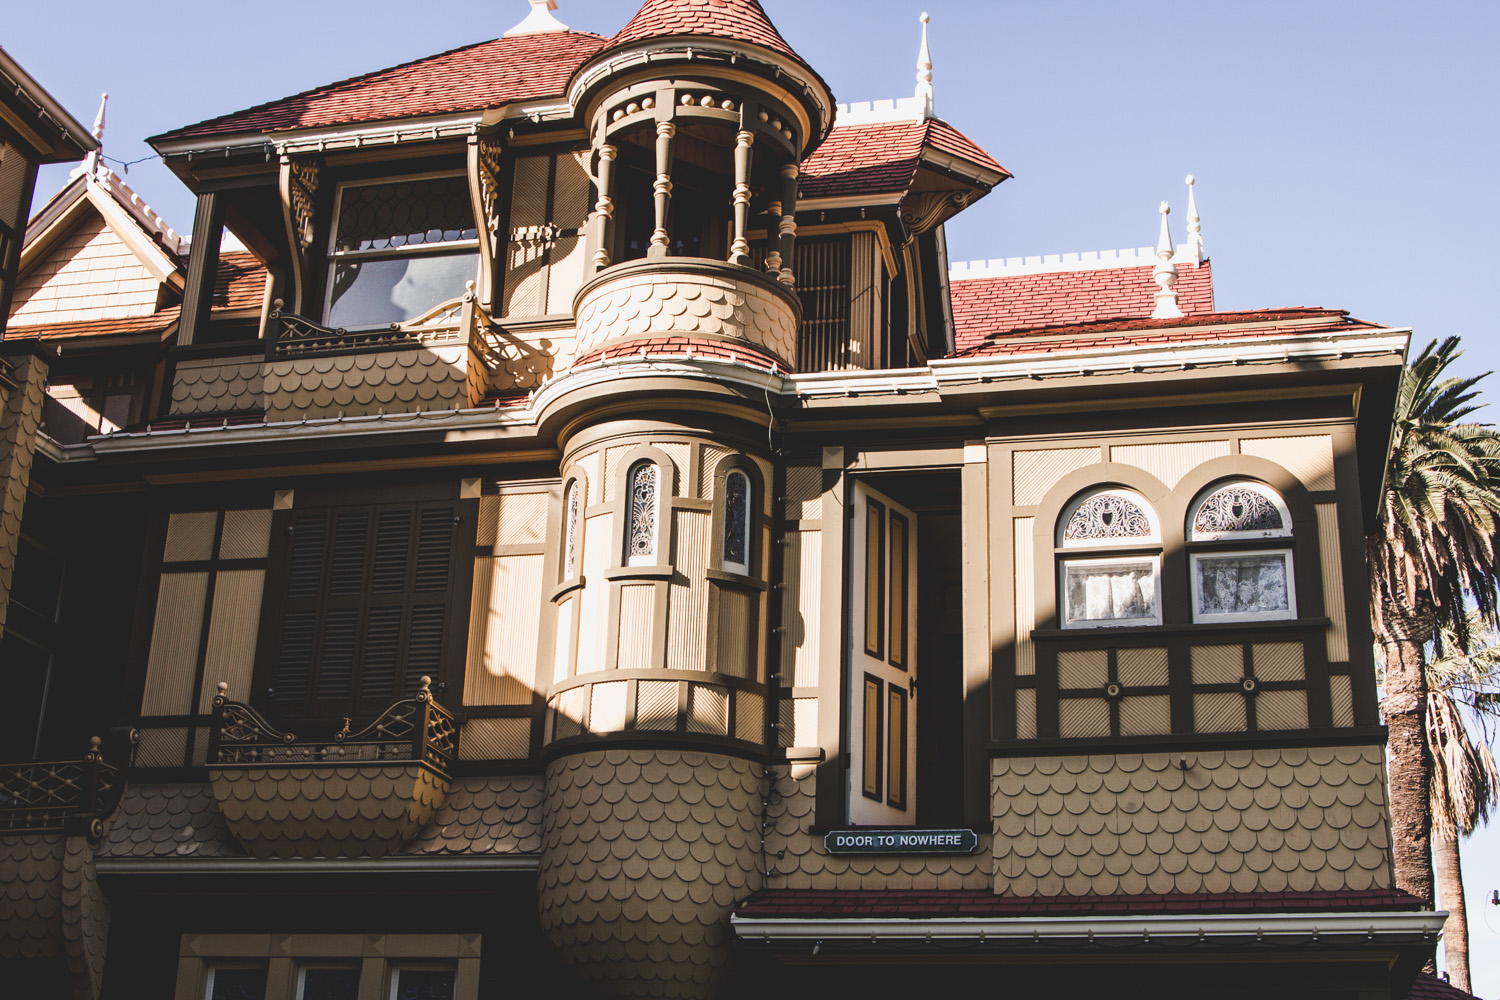 The door to nowhere in the Winchester Mystery House in San Jose, CA